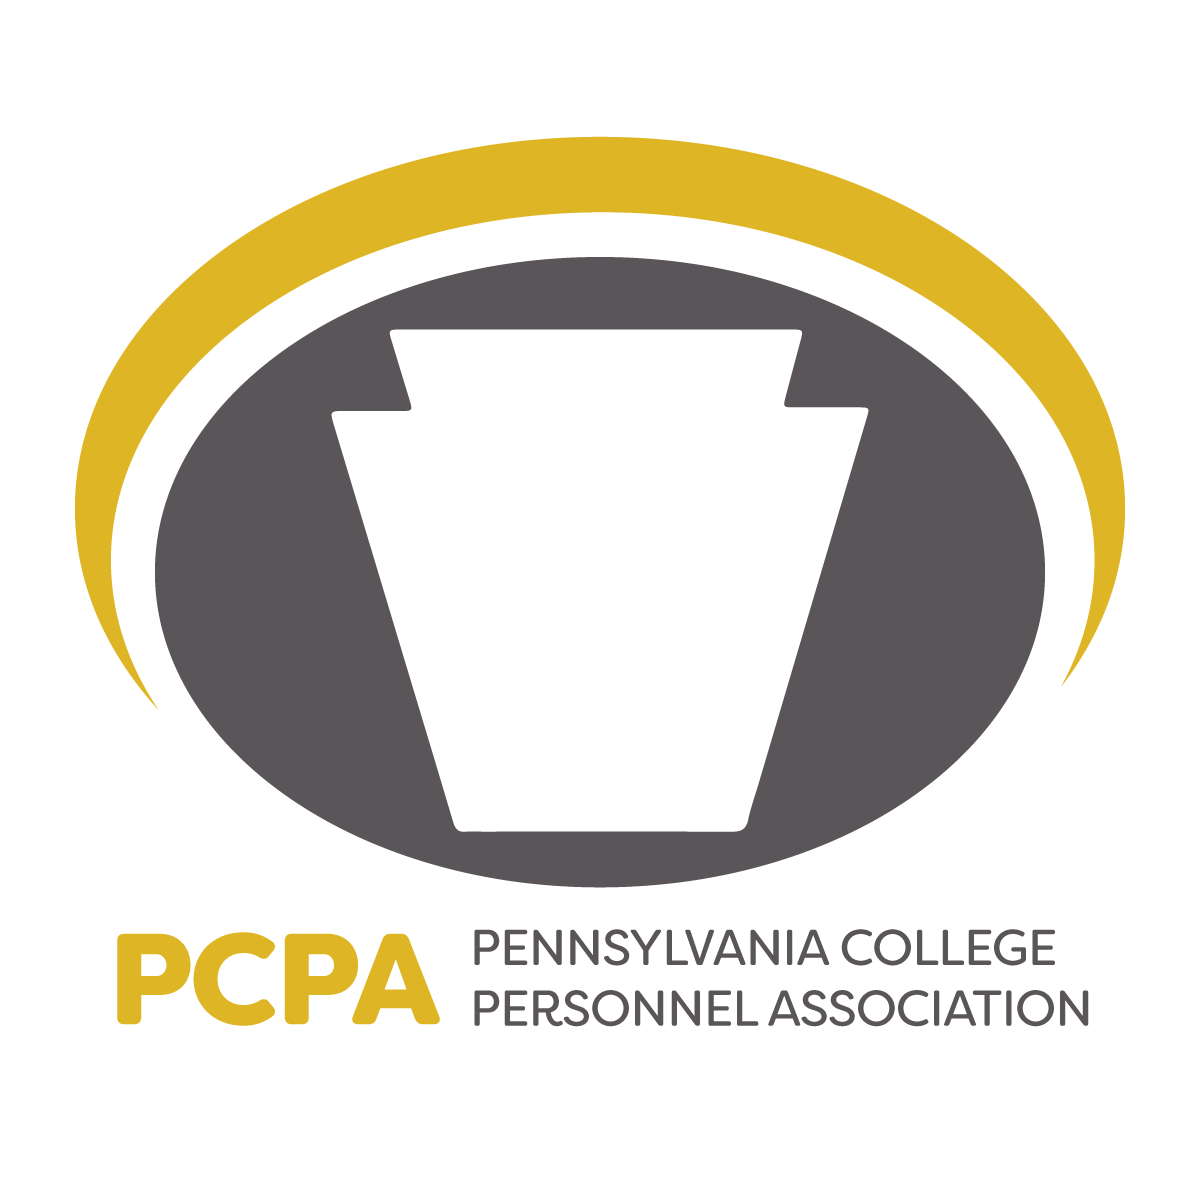 PCPA logo featuring a symbol from the Pennsylvania flag